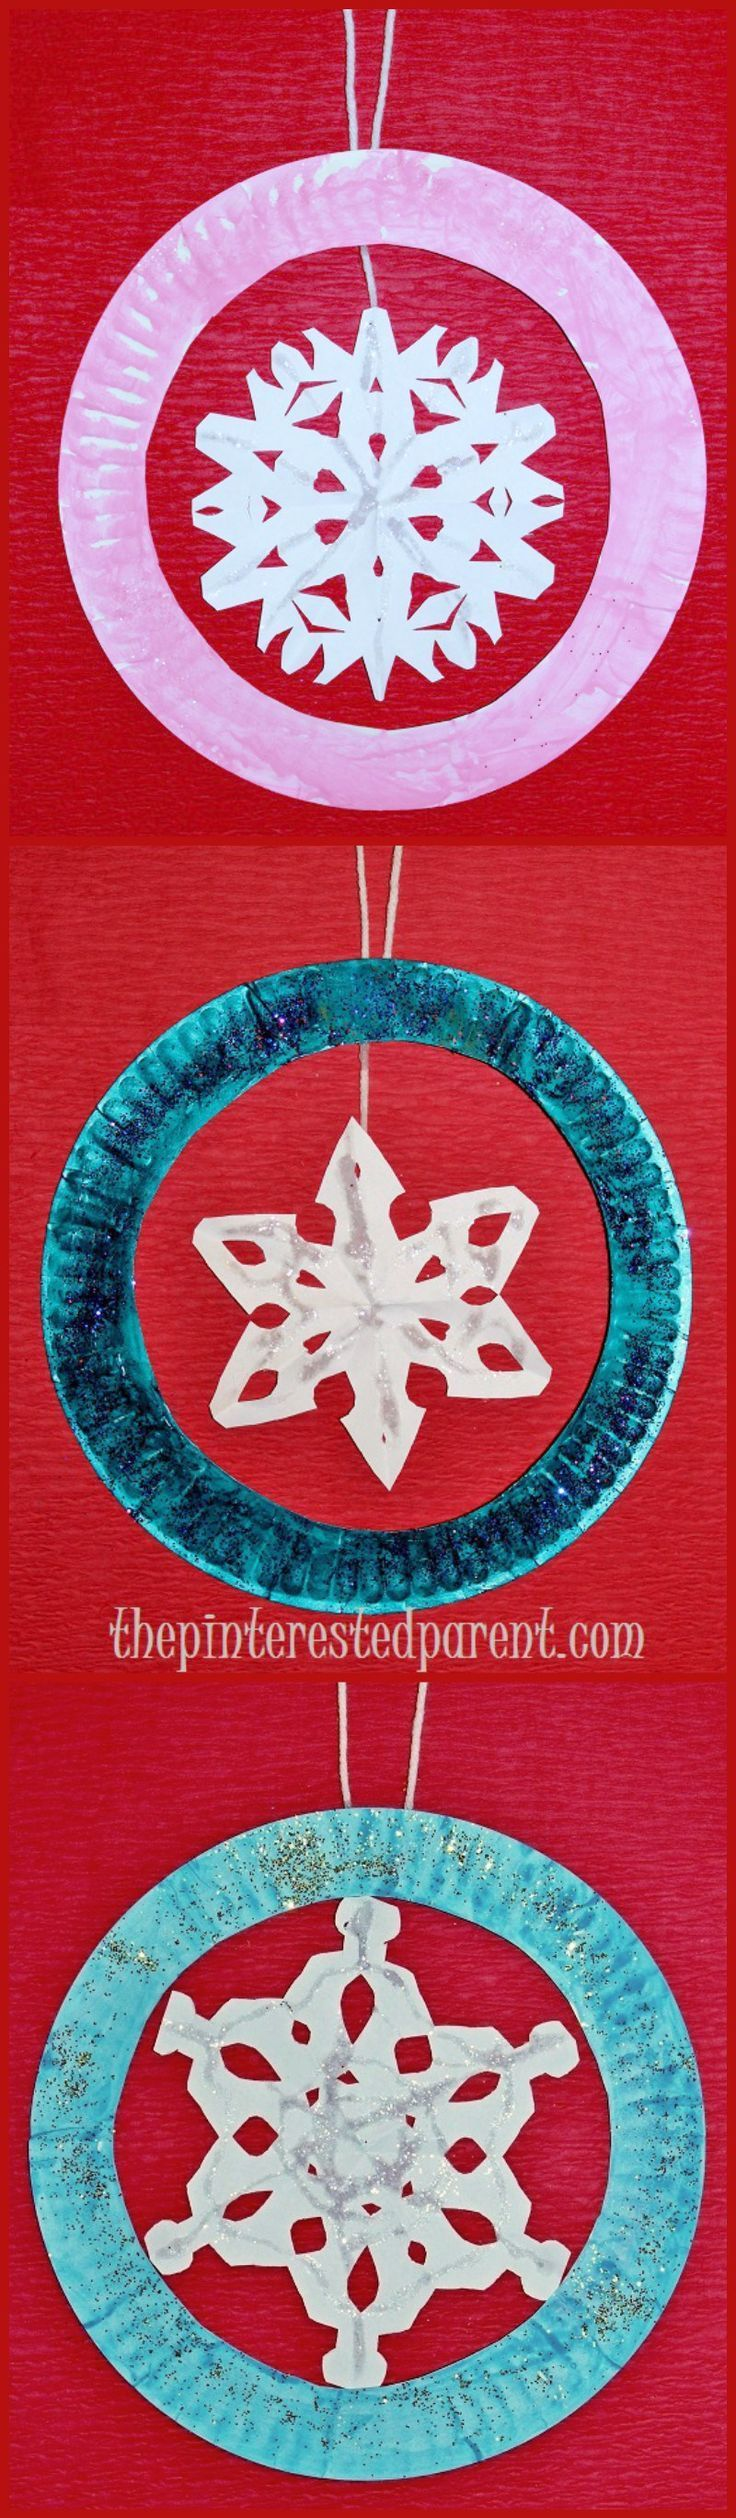 Snowflake Crafts With Paper